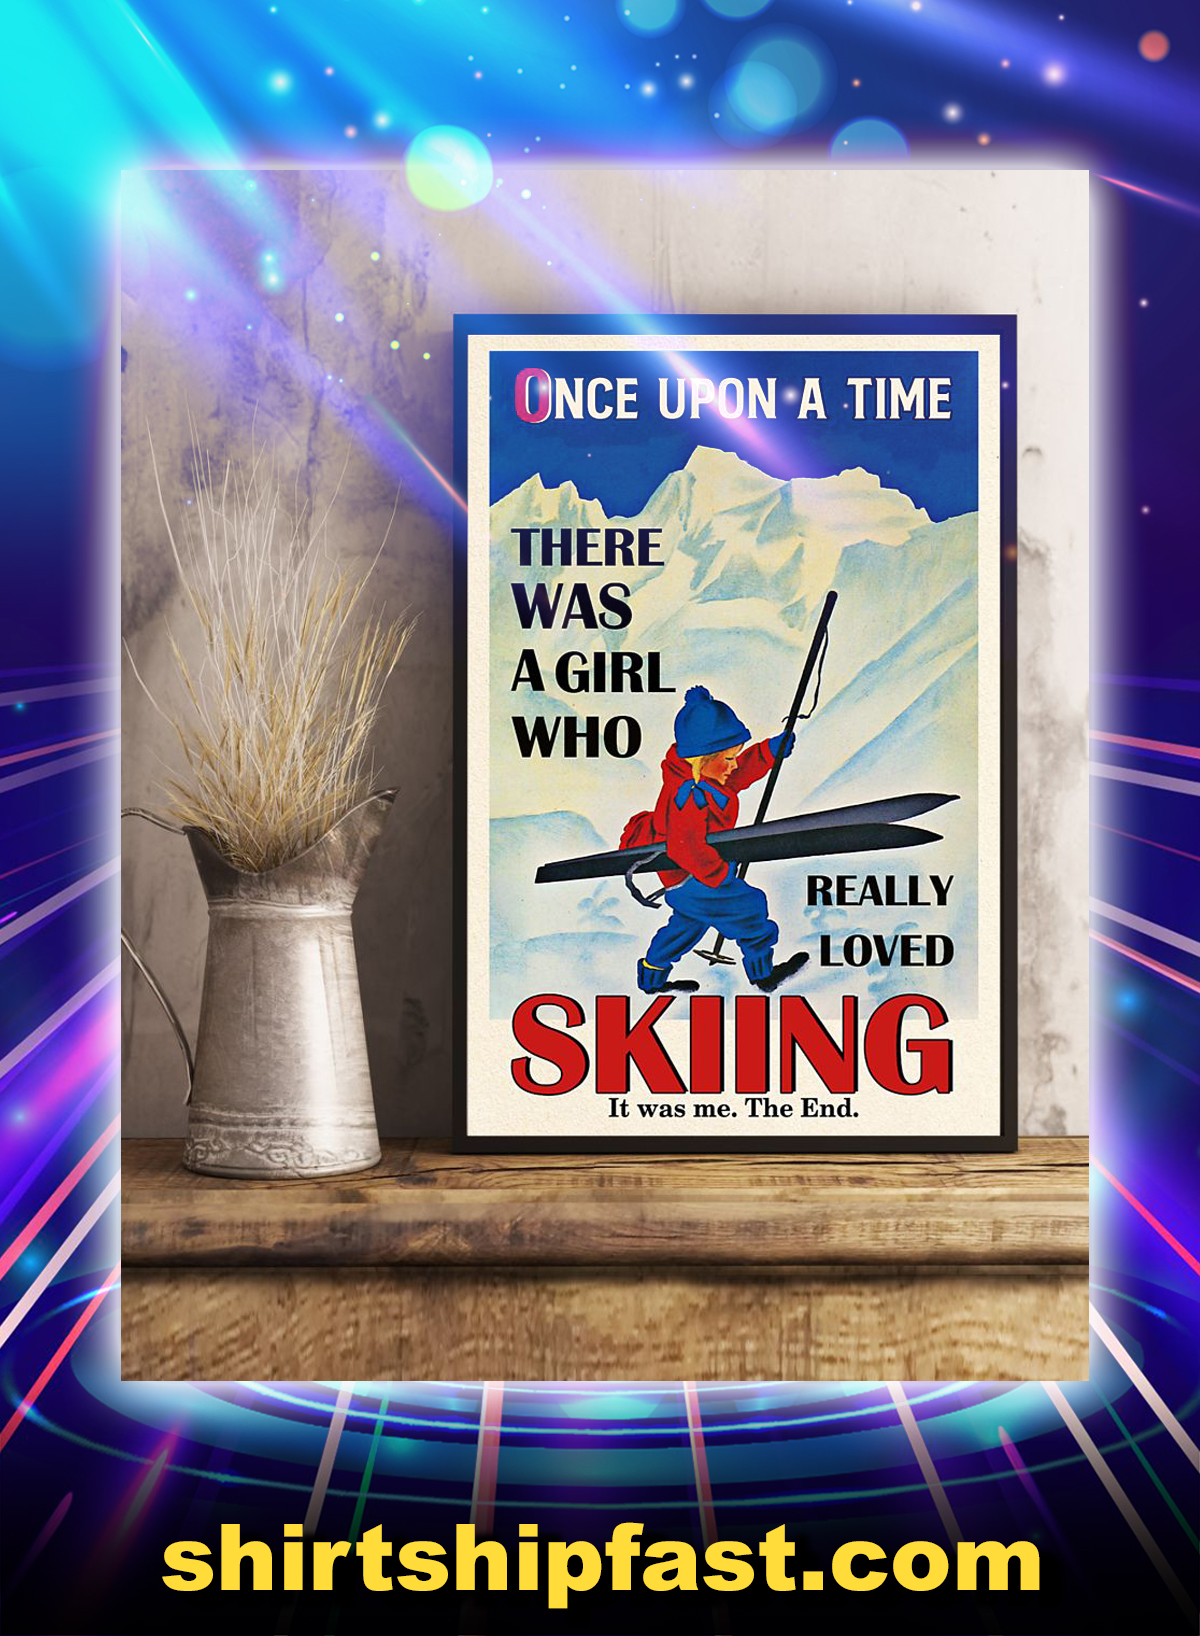 Canvas prints and poster Once upon a time there was a girl who really loved skiing